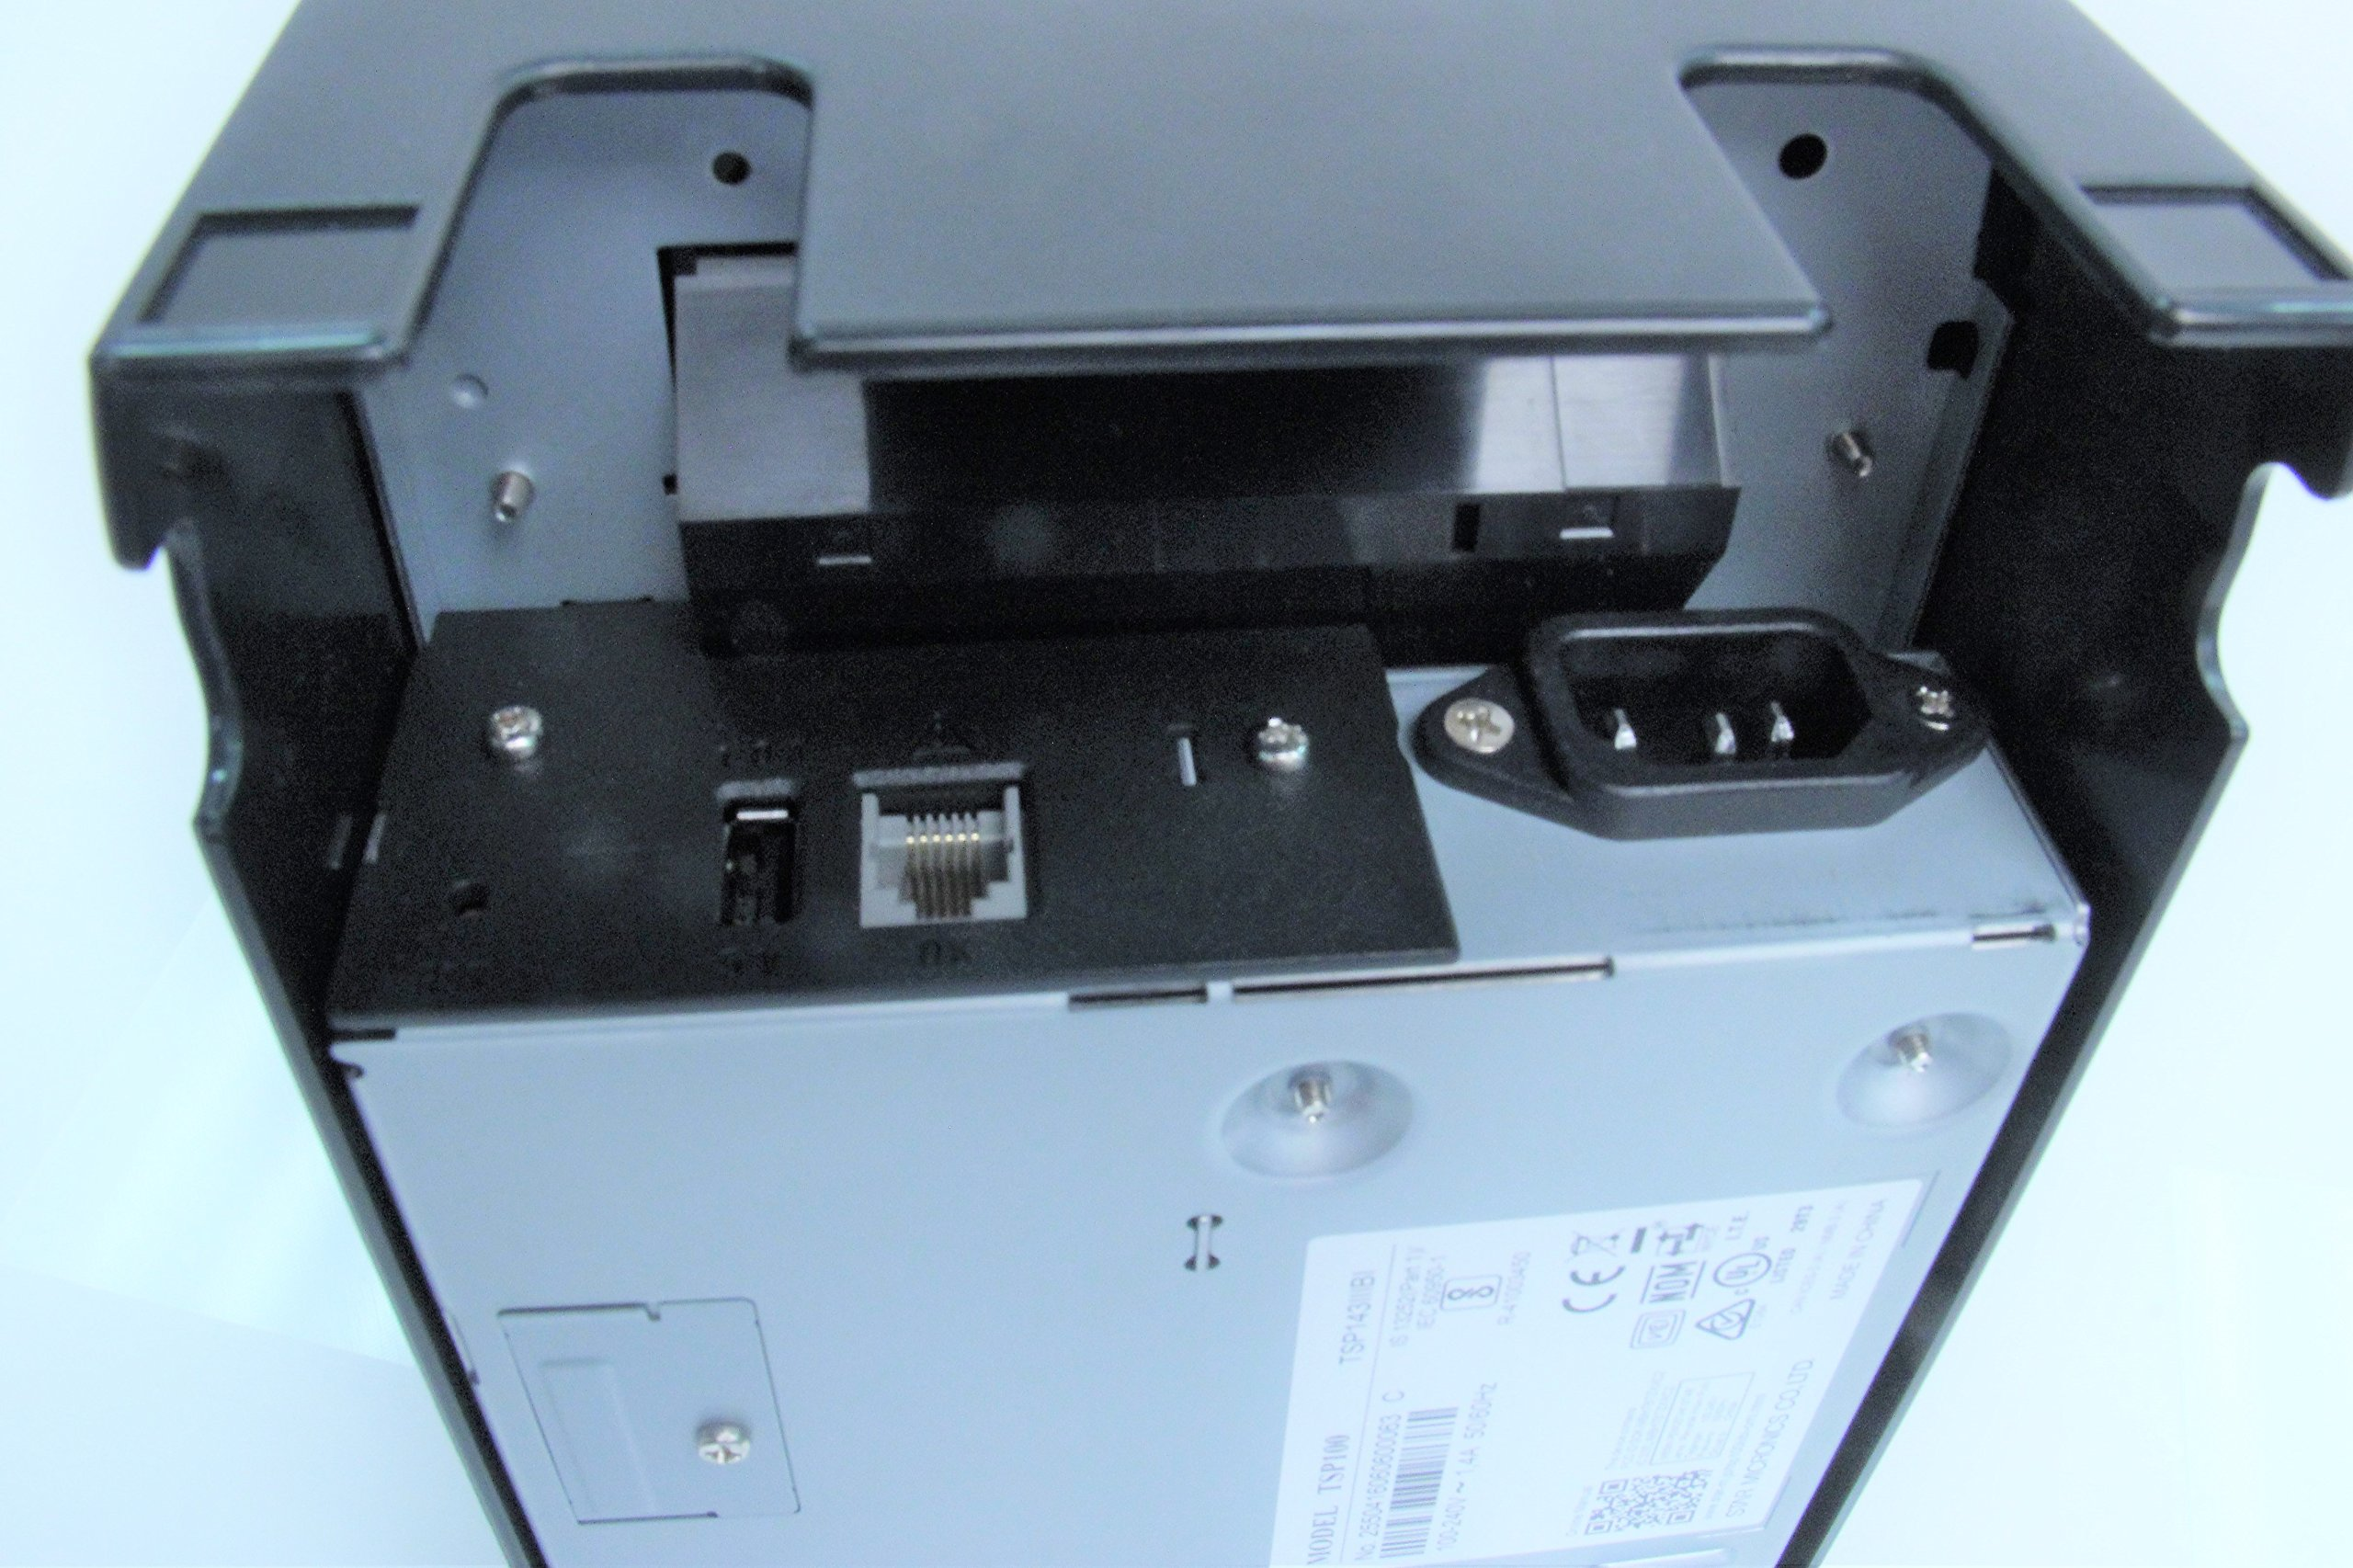 TSP100III THERMAL AUTO-CUTTER by Star Micronics